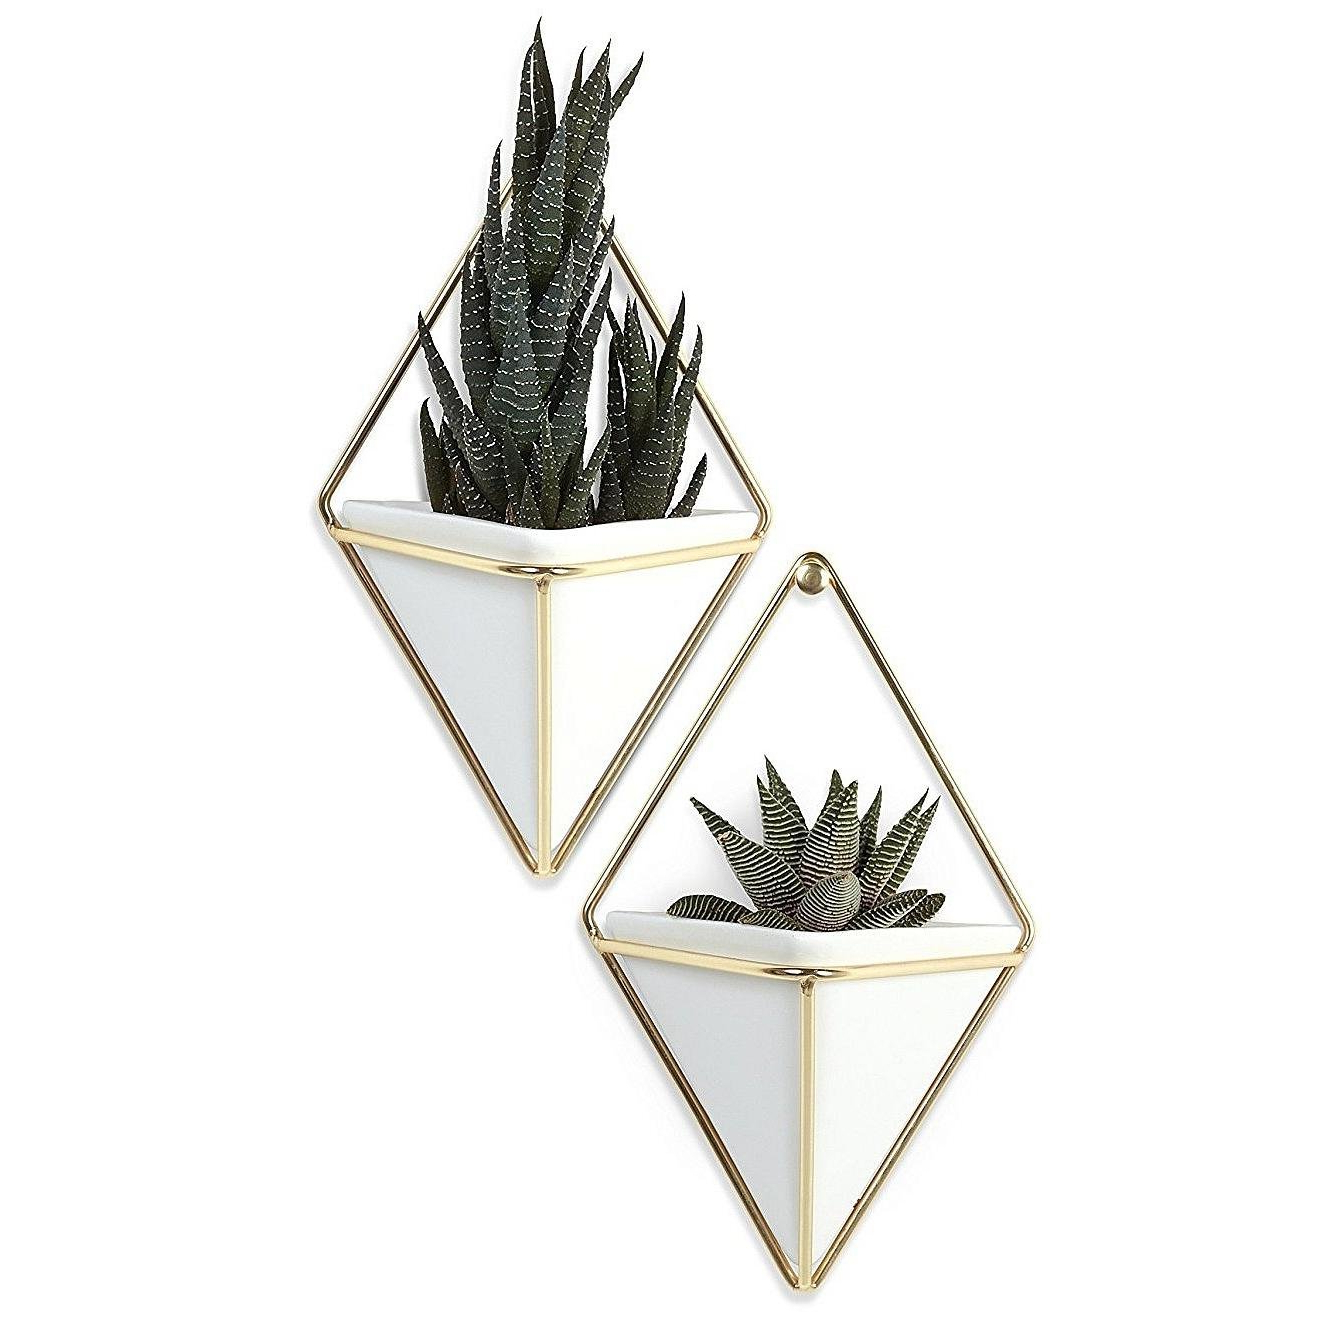 Most Popular Trigg Ceramic Planter Wall Decor Within Umbra Trigg Hanging Planter Vase & Geometric Wall Decor Container (View 9 of 20)